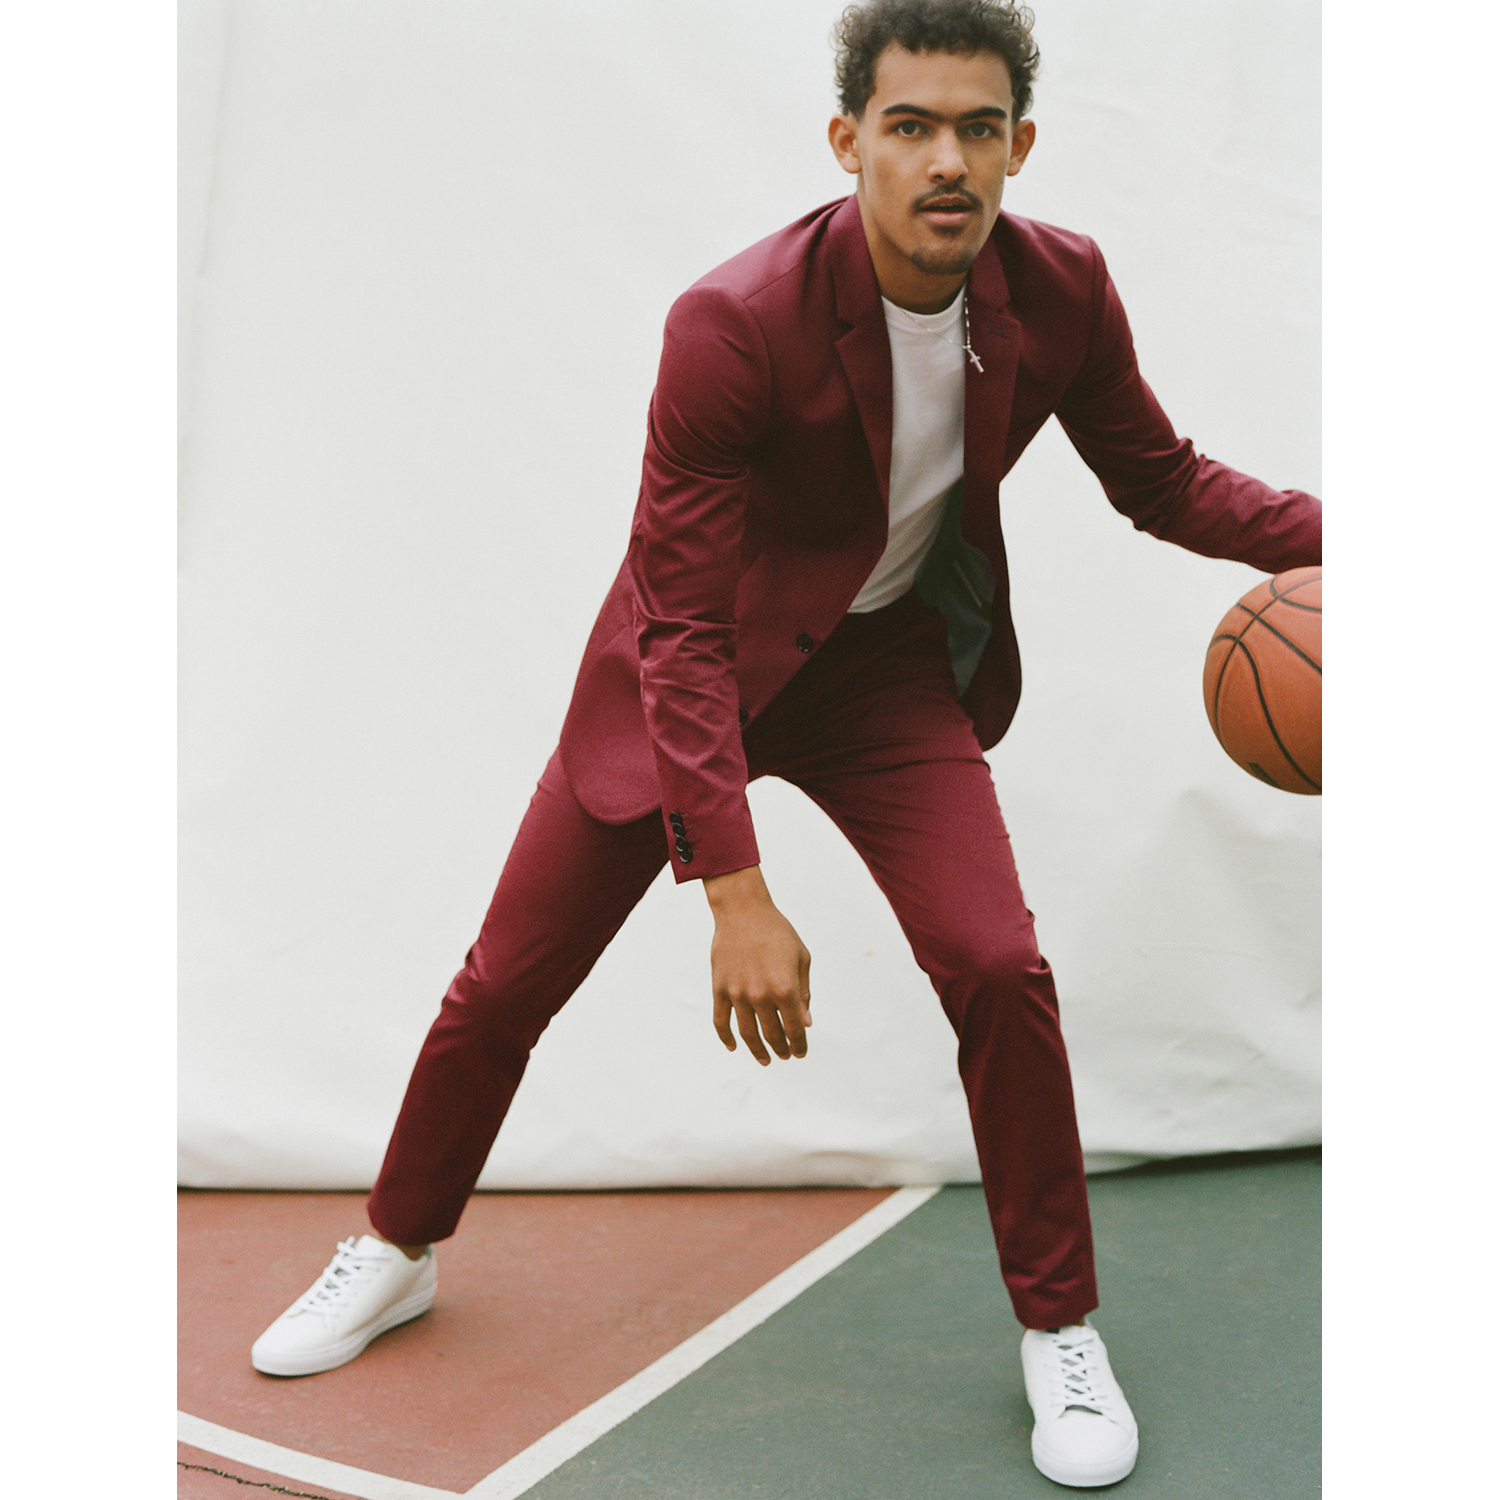 The Making Of An Outfit And An Athlete: Trae Young